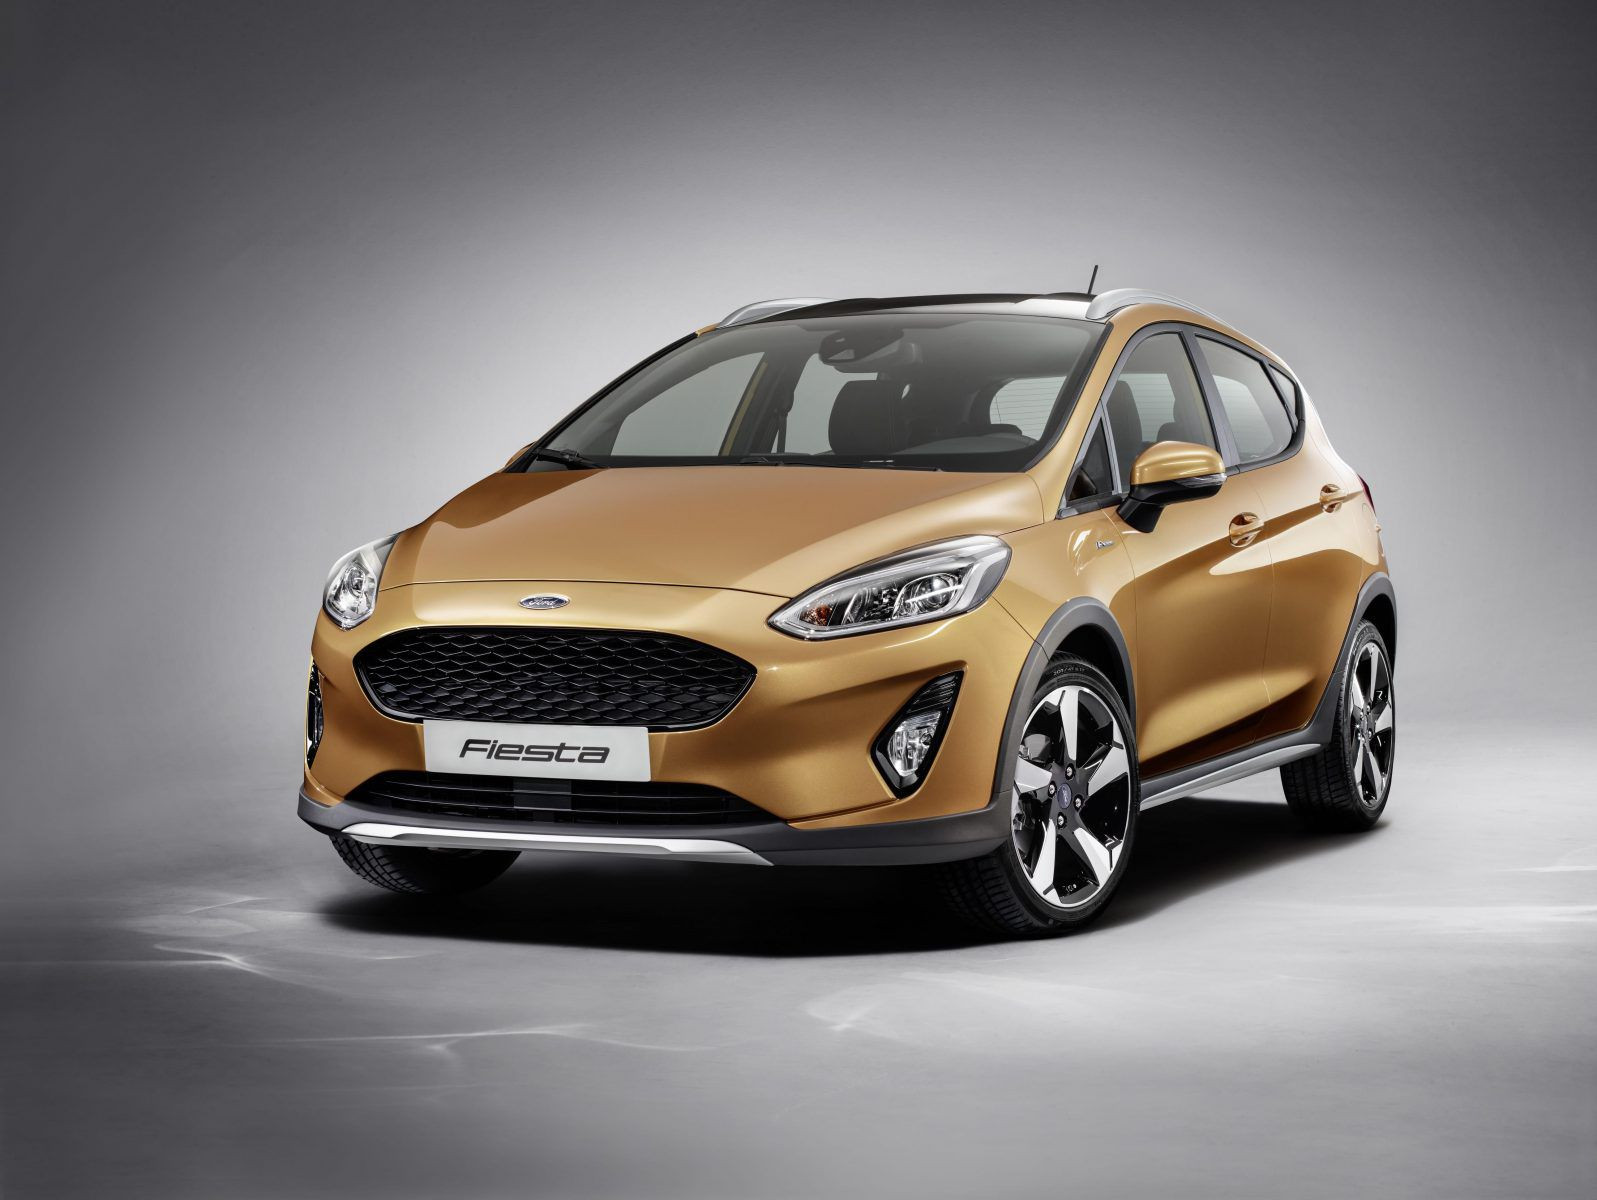 Gold Ford Fiesta 4 door hatchback car